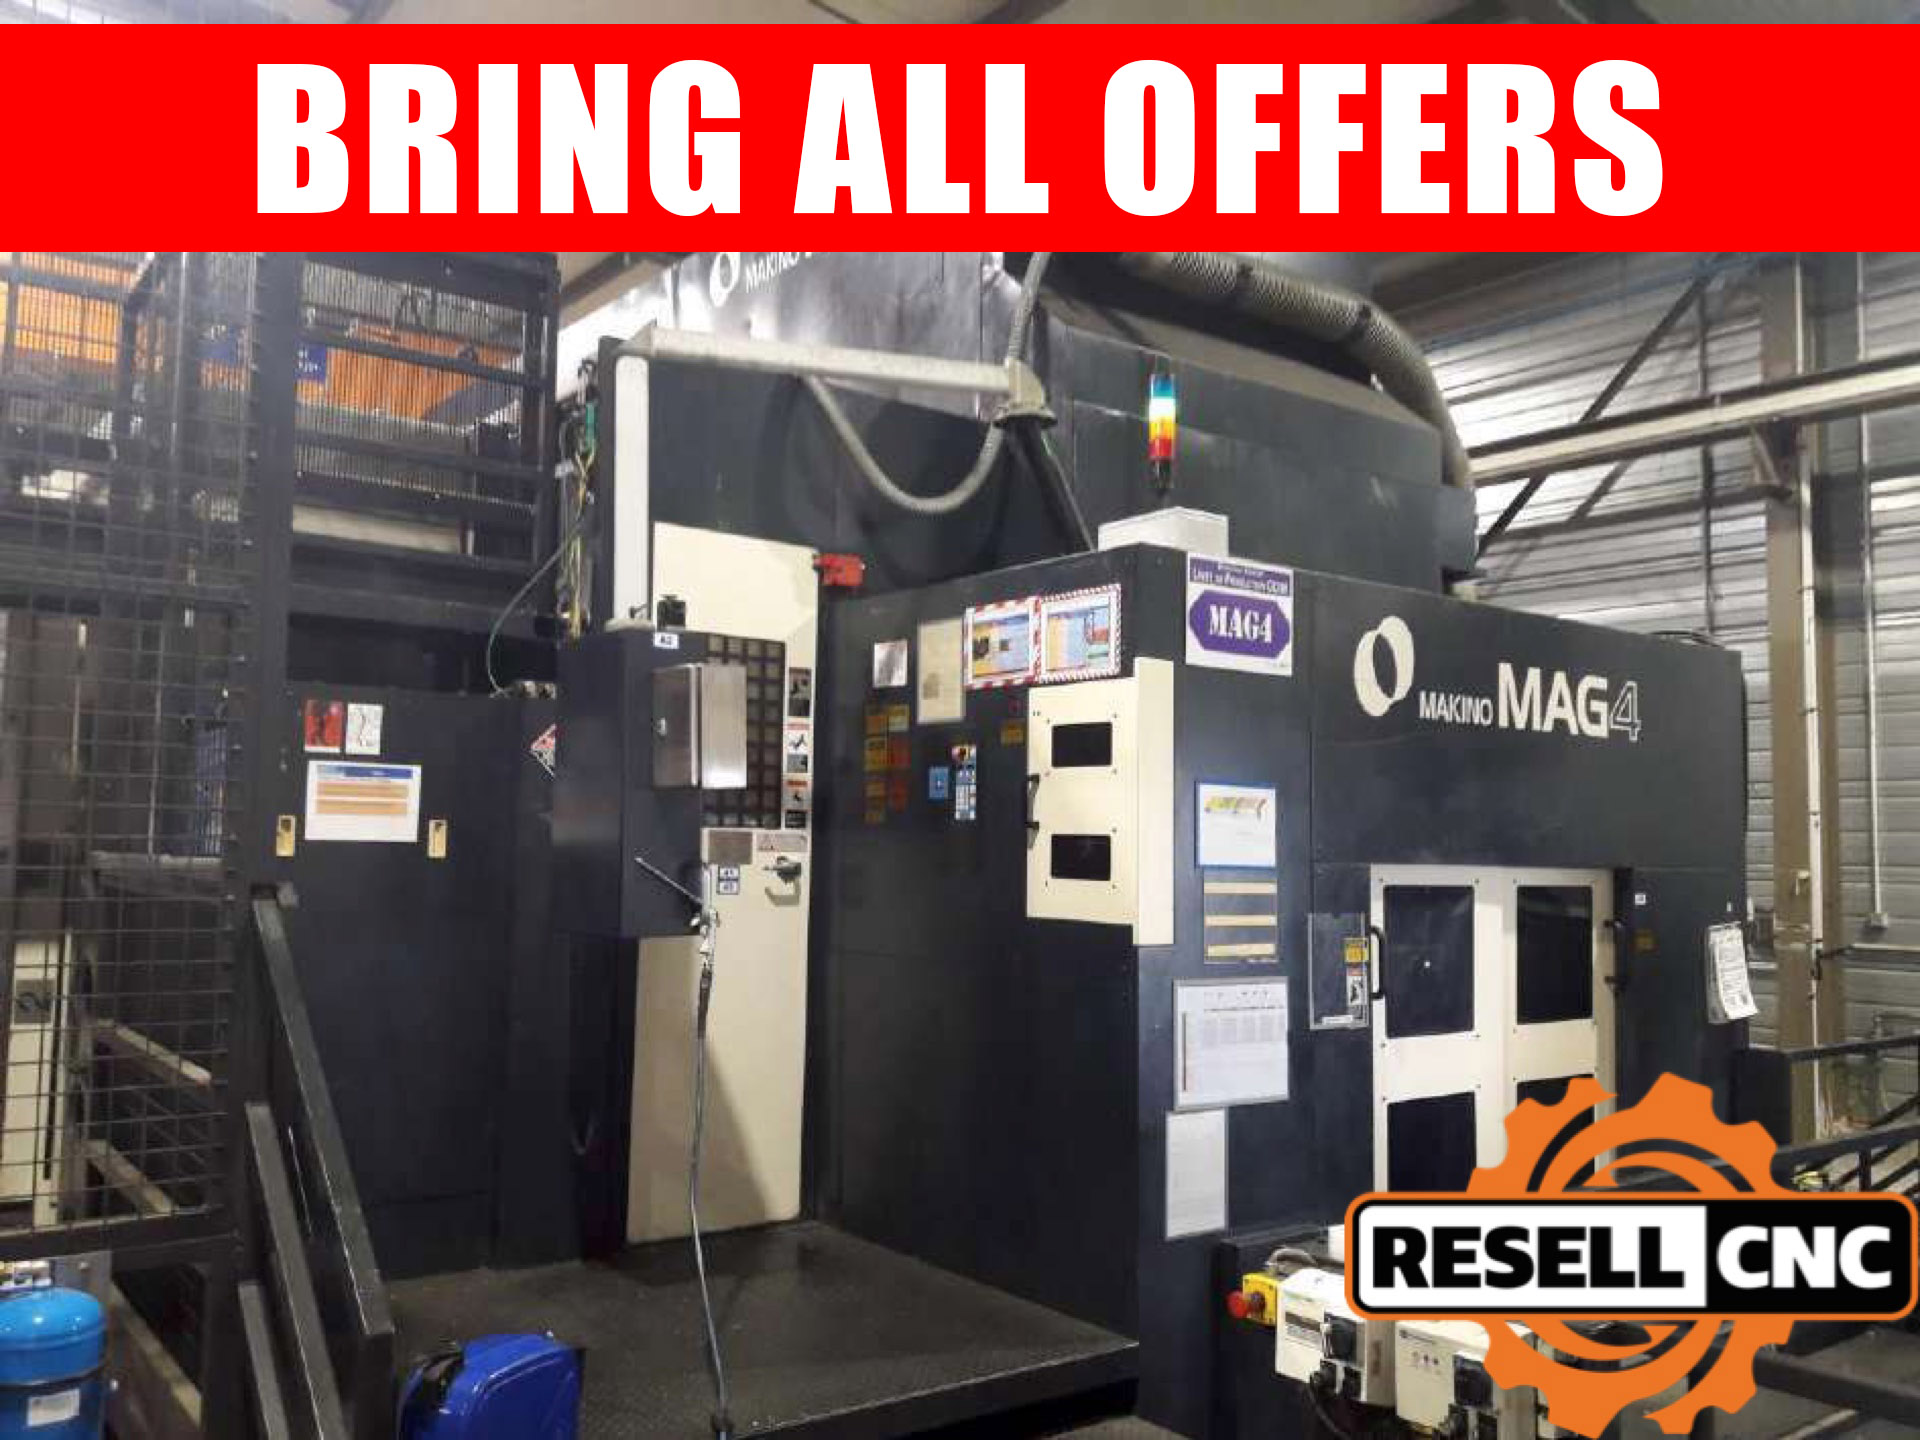 Used CNC Horizontals - Used CNC Horizontal Machines | Resell CNC